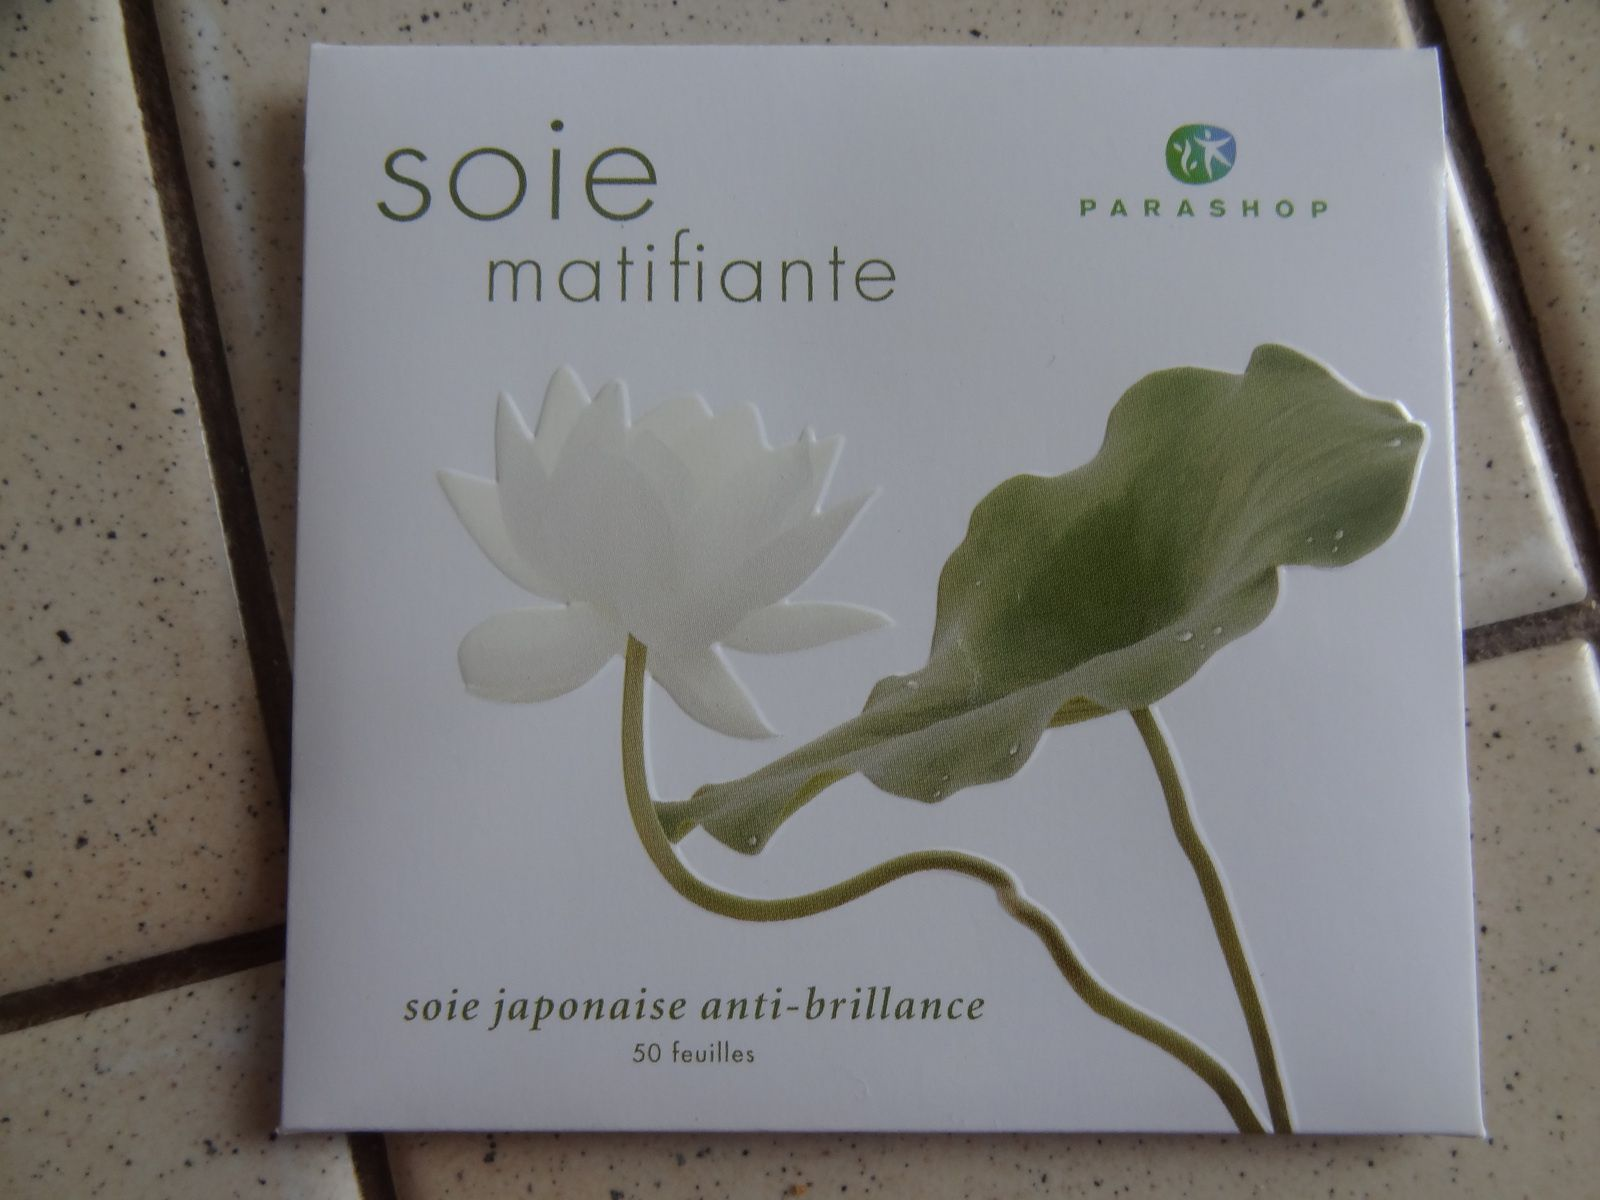 Soie matifiante Parashop